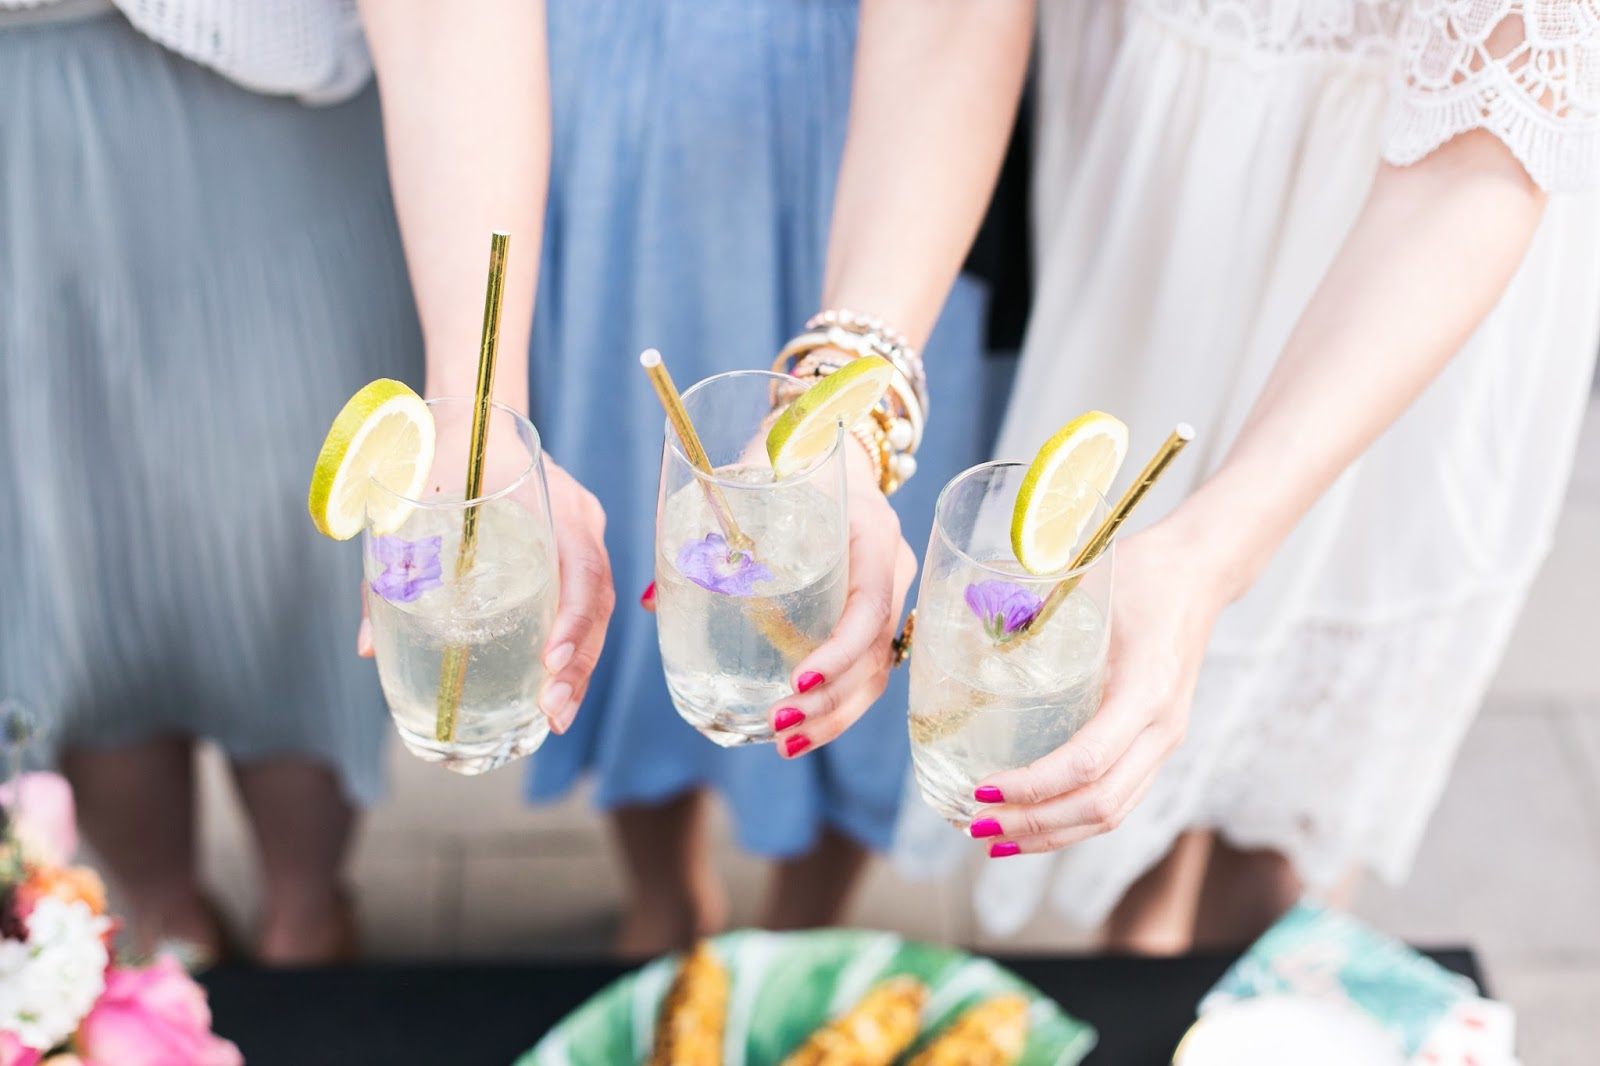 Celebrating the first day of summer with girlfriends and St-Germain cocktails